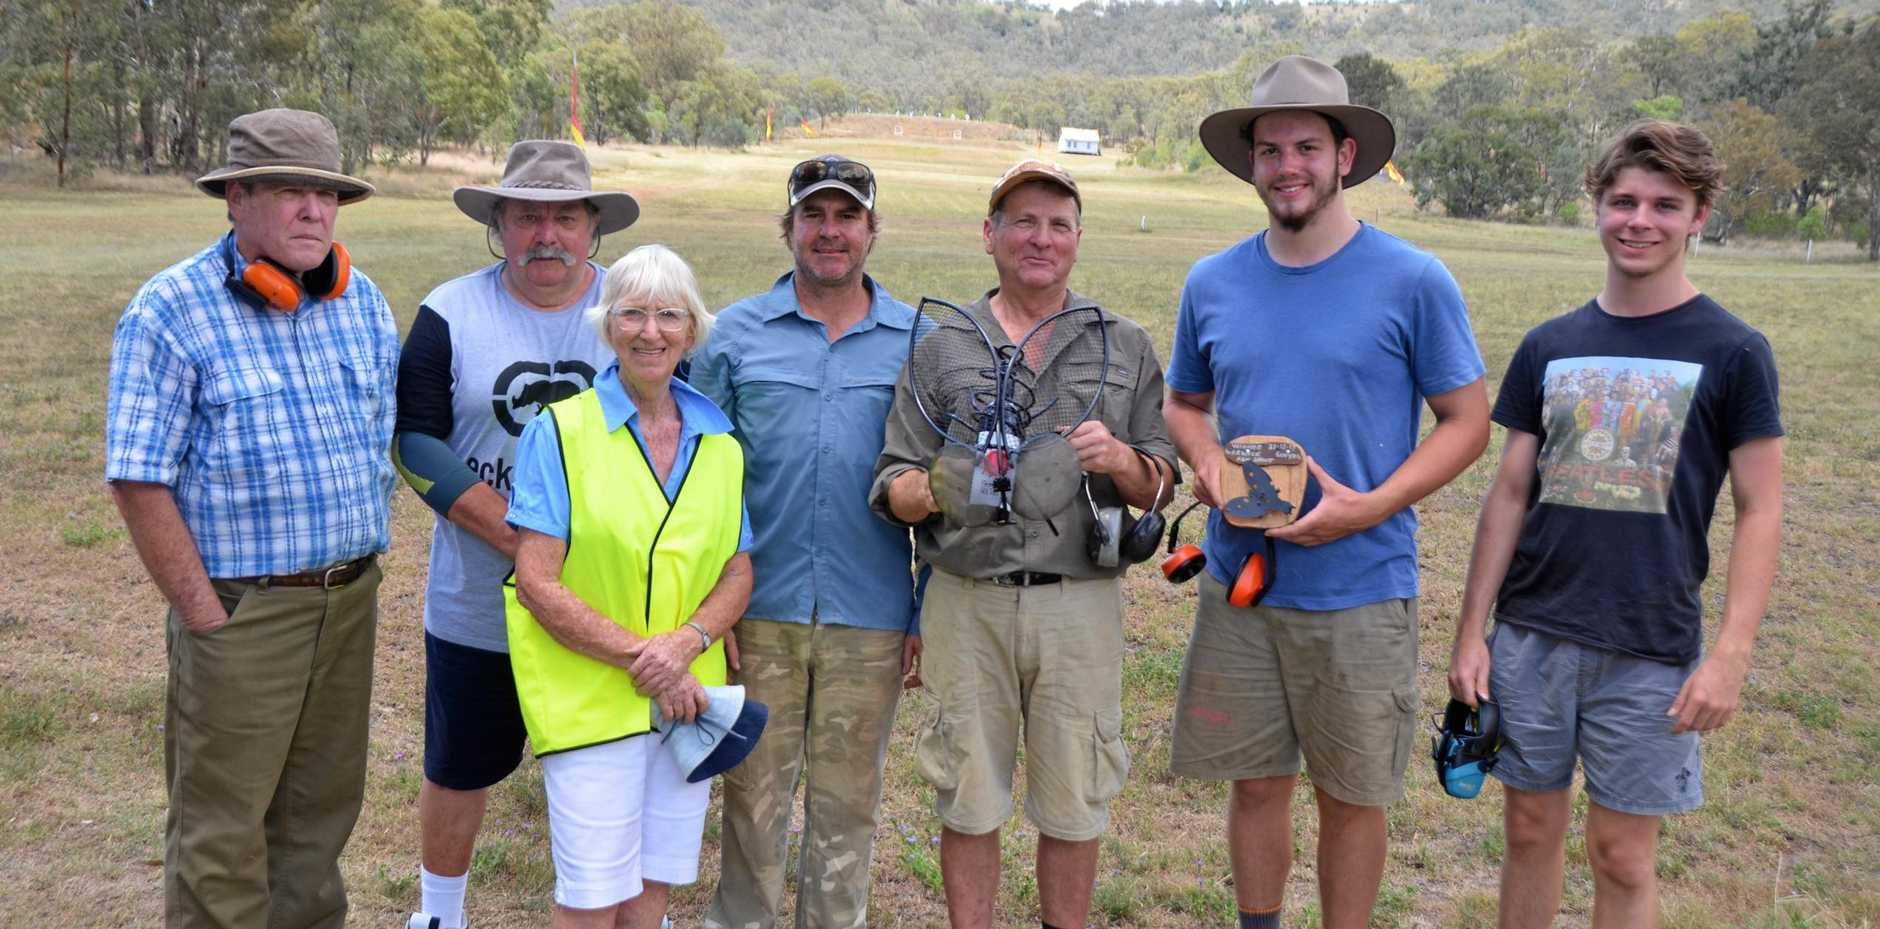 SHOOT ON: Bruce McAllan, Bob Tyllyer, Margaret Taylor, Brad Hart, Murray Reck, Ned Roche and Conor Roche at the Southern Downs Rifle Club Fly Shoot on New Year's Eve.